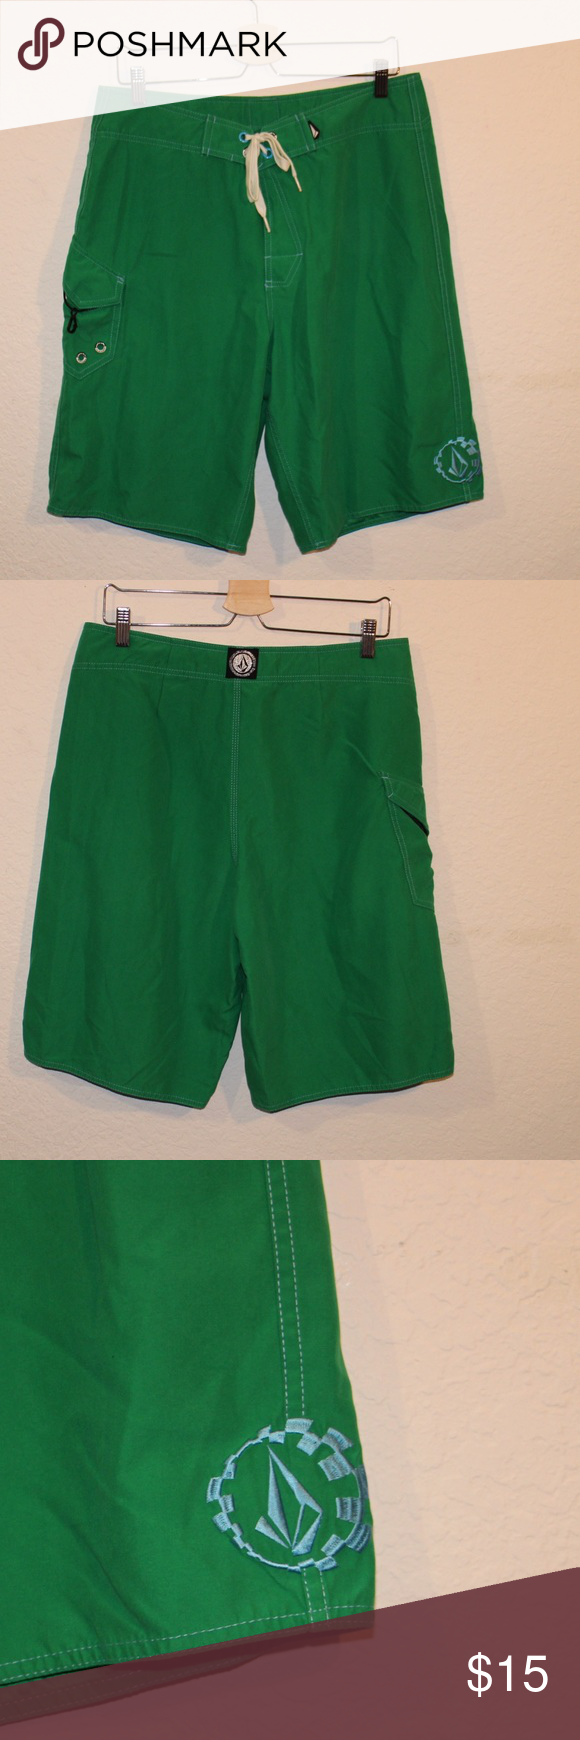 """VOLCOM Planer Mod Green Boardshorts Sz 34 NWOT VOLCOM Planer Mod 22"""" board short is made from 100% Polyester Supersuede for a soft feel even when wet. Features VOLCOM embroidery and modular zip-fly technology. Features cotton draw cord. All reasonable offers considered. Volcom Swim Board Shorts"""